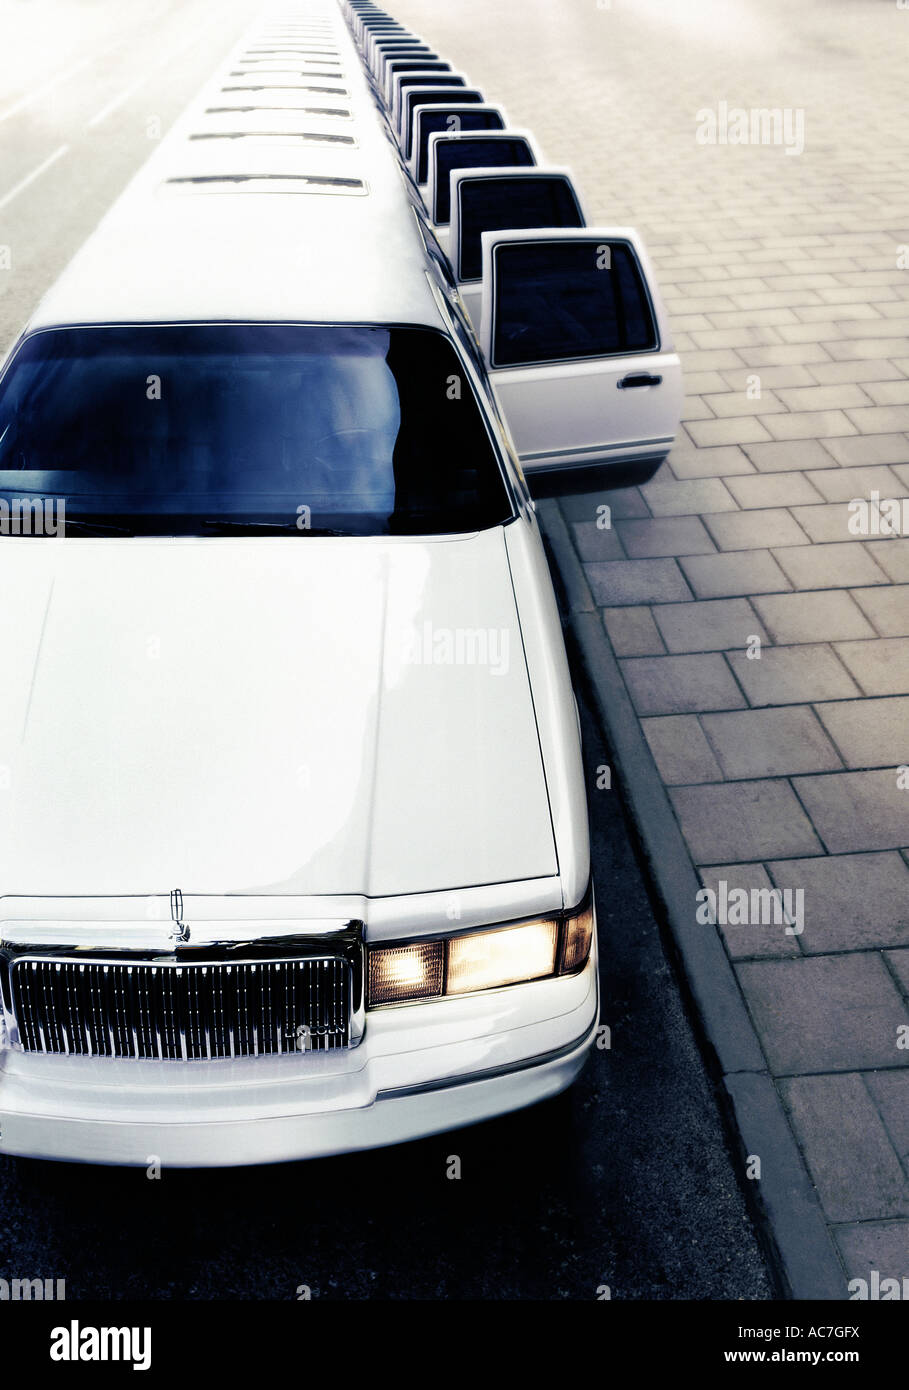 Superstretch white limousine parked at the kerb - Stock Image